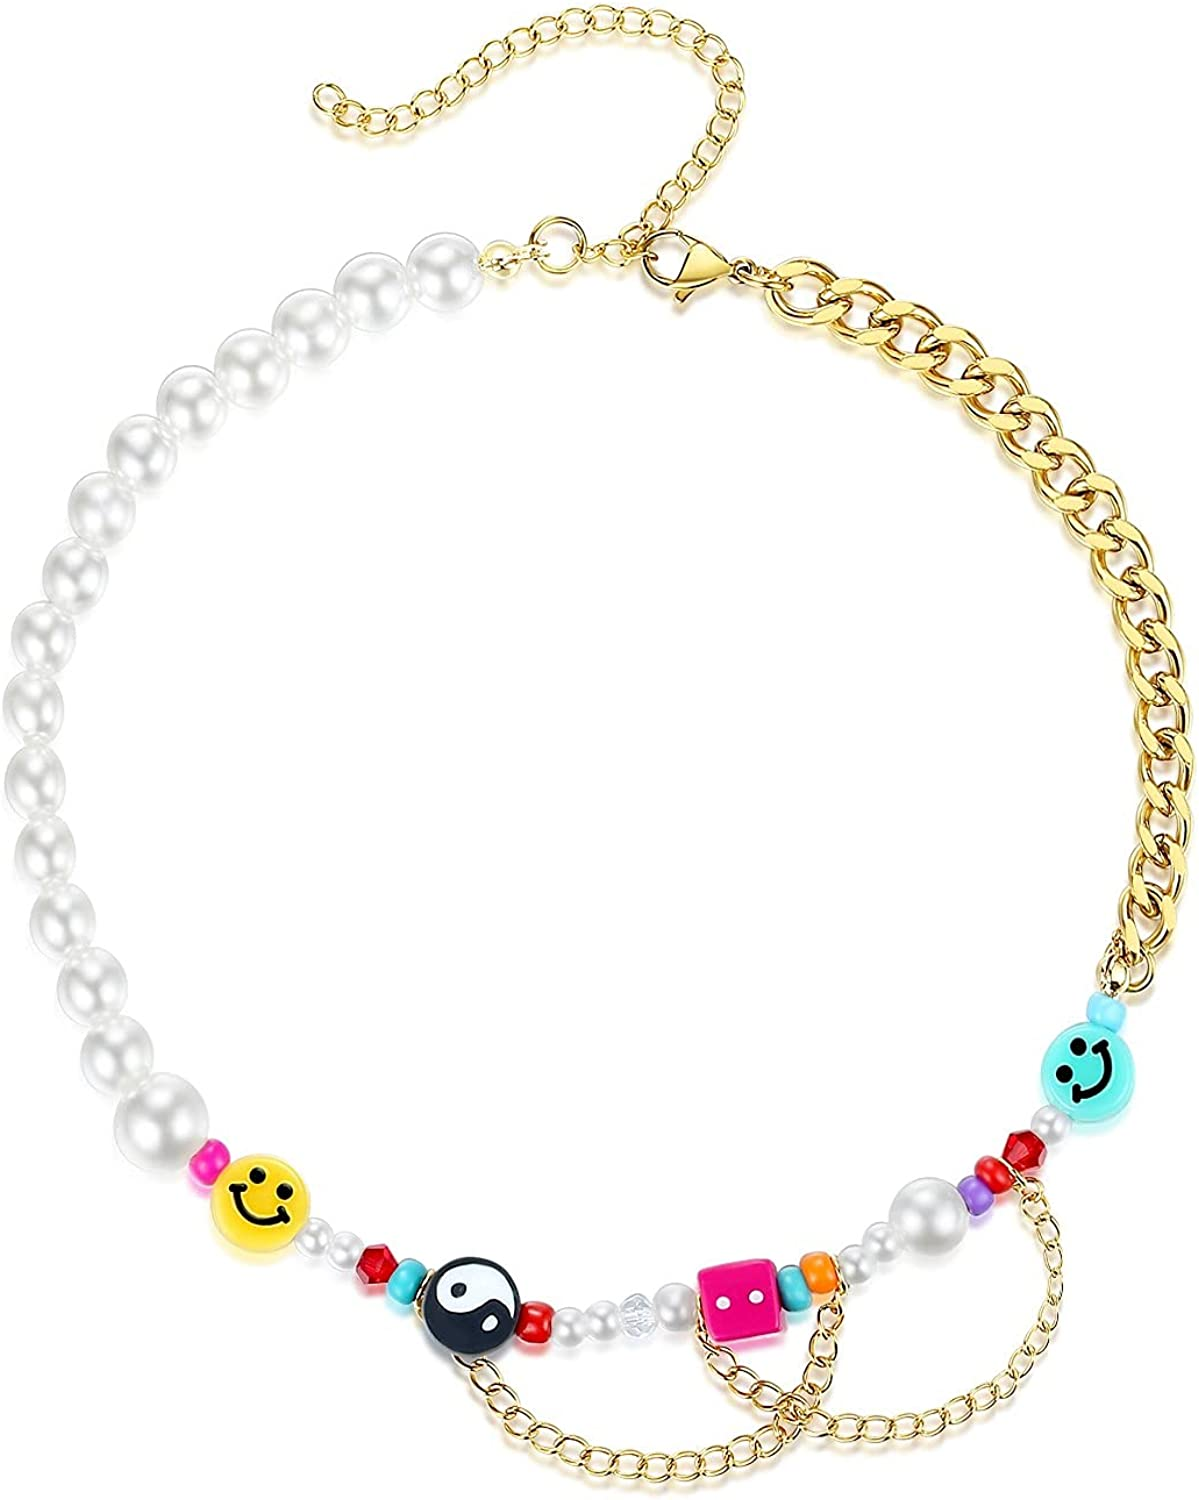 Happy Go Lucky Necklace Smiley Face Yin Yang Colorful Pearl Beads Necklace Handmade Y2k Jewelry for Women Girls